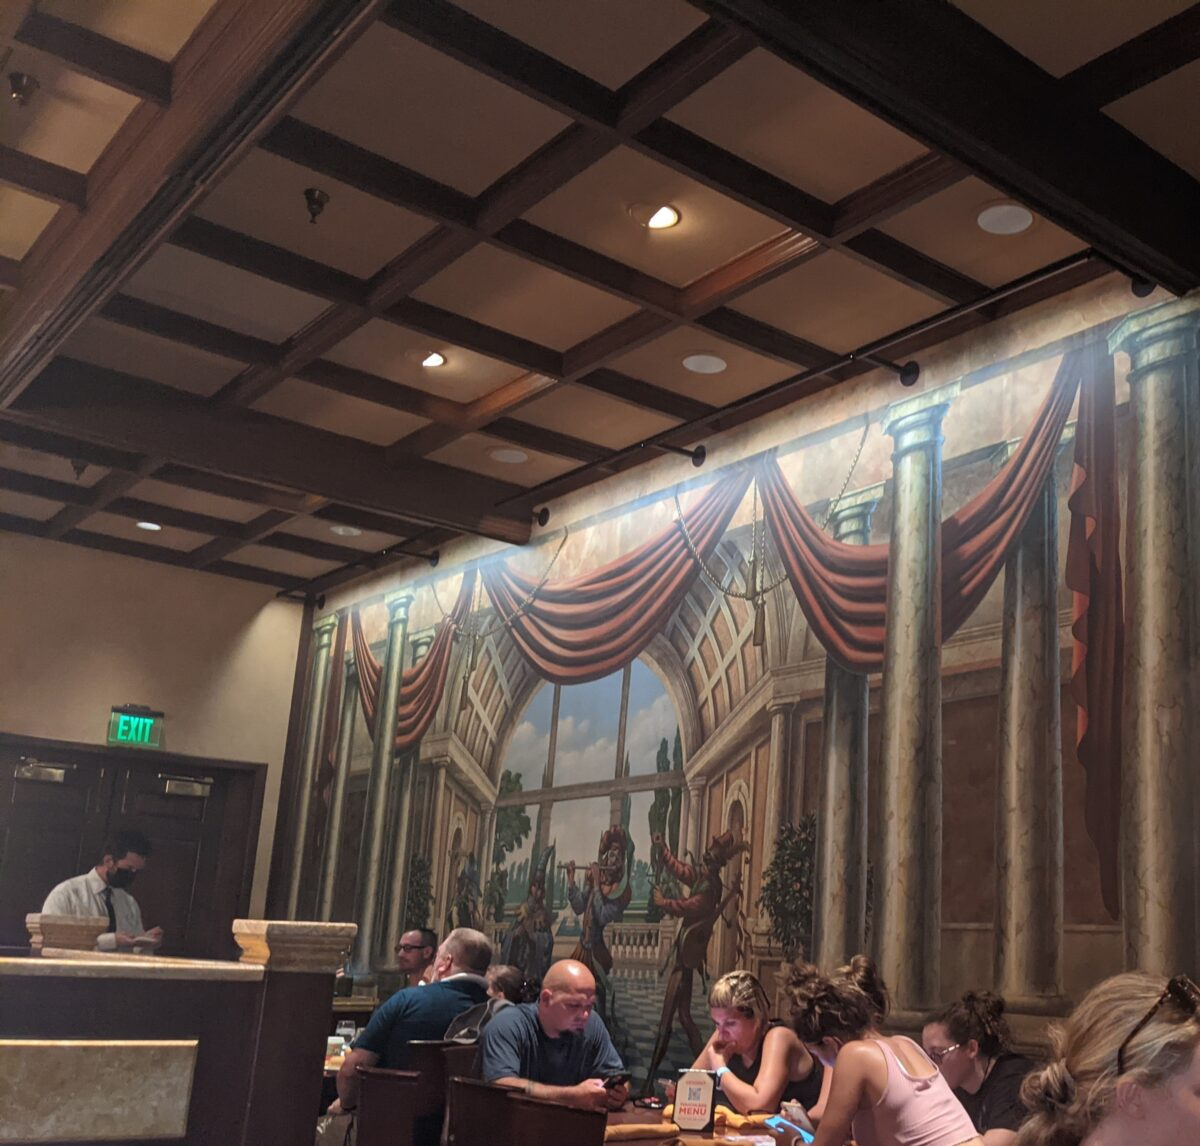 See columns & other Italy staples in artwork at Epcot's Italian restaurant, Tutto Italia